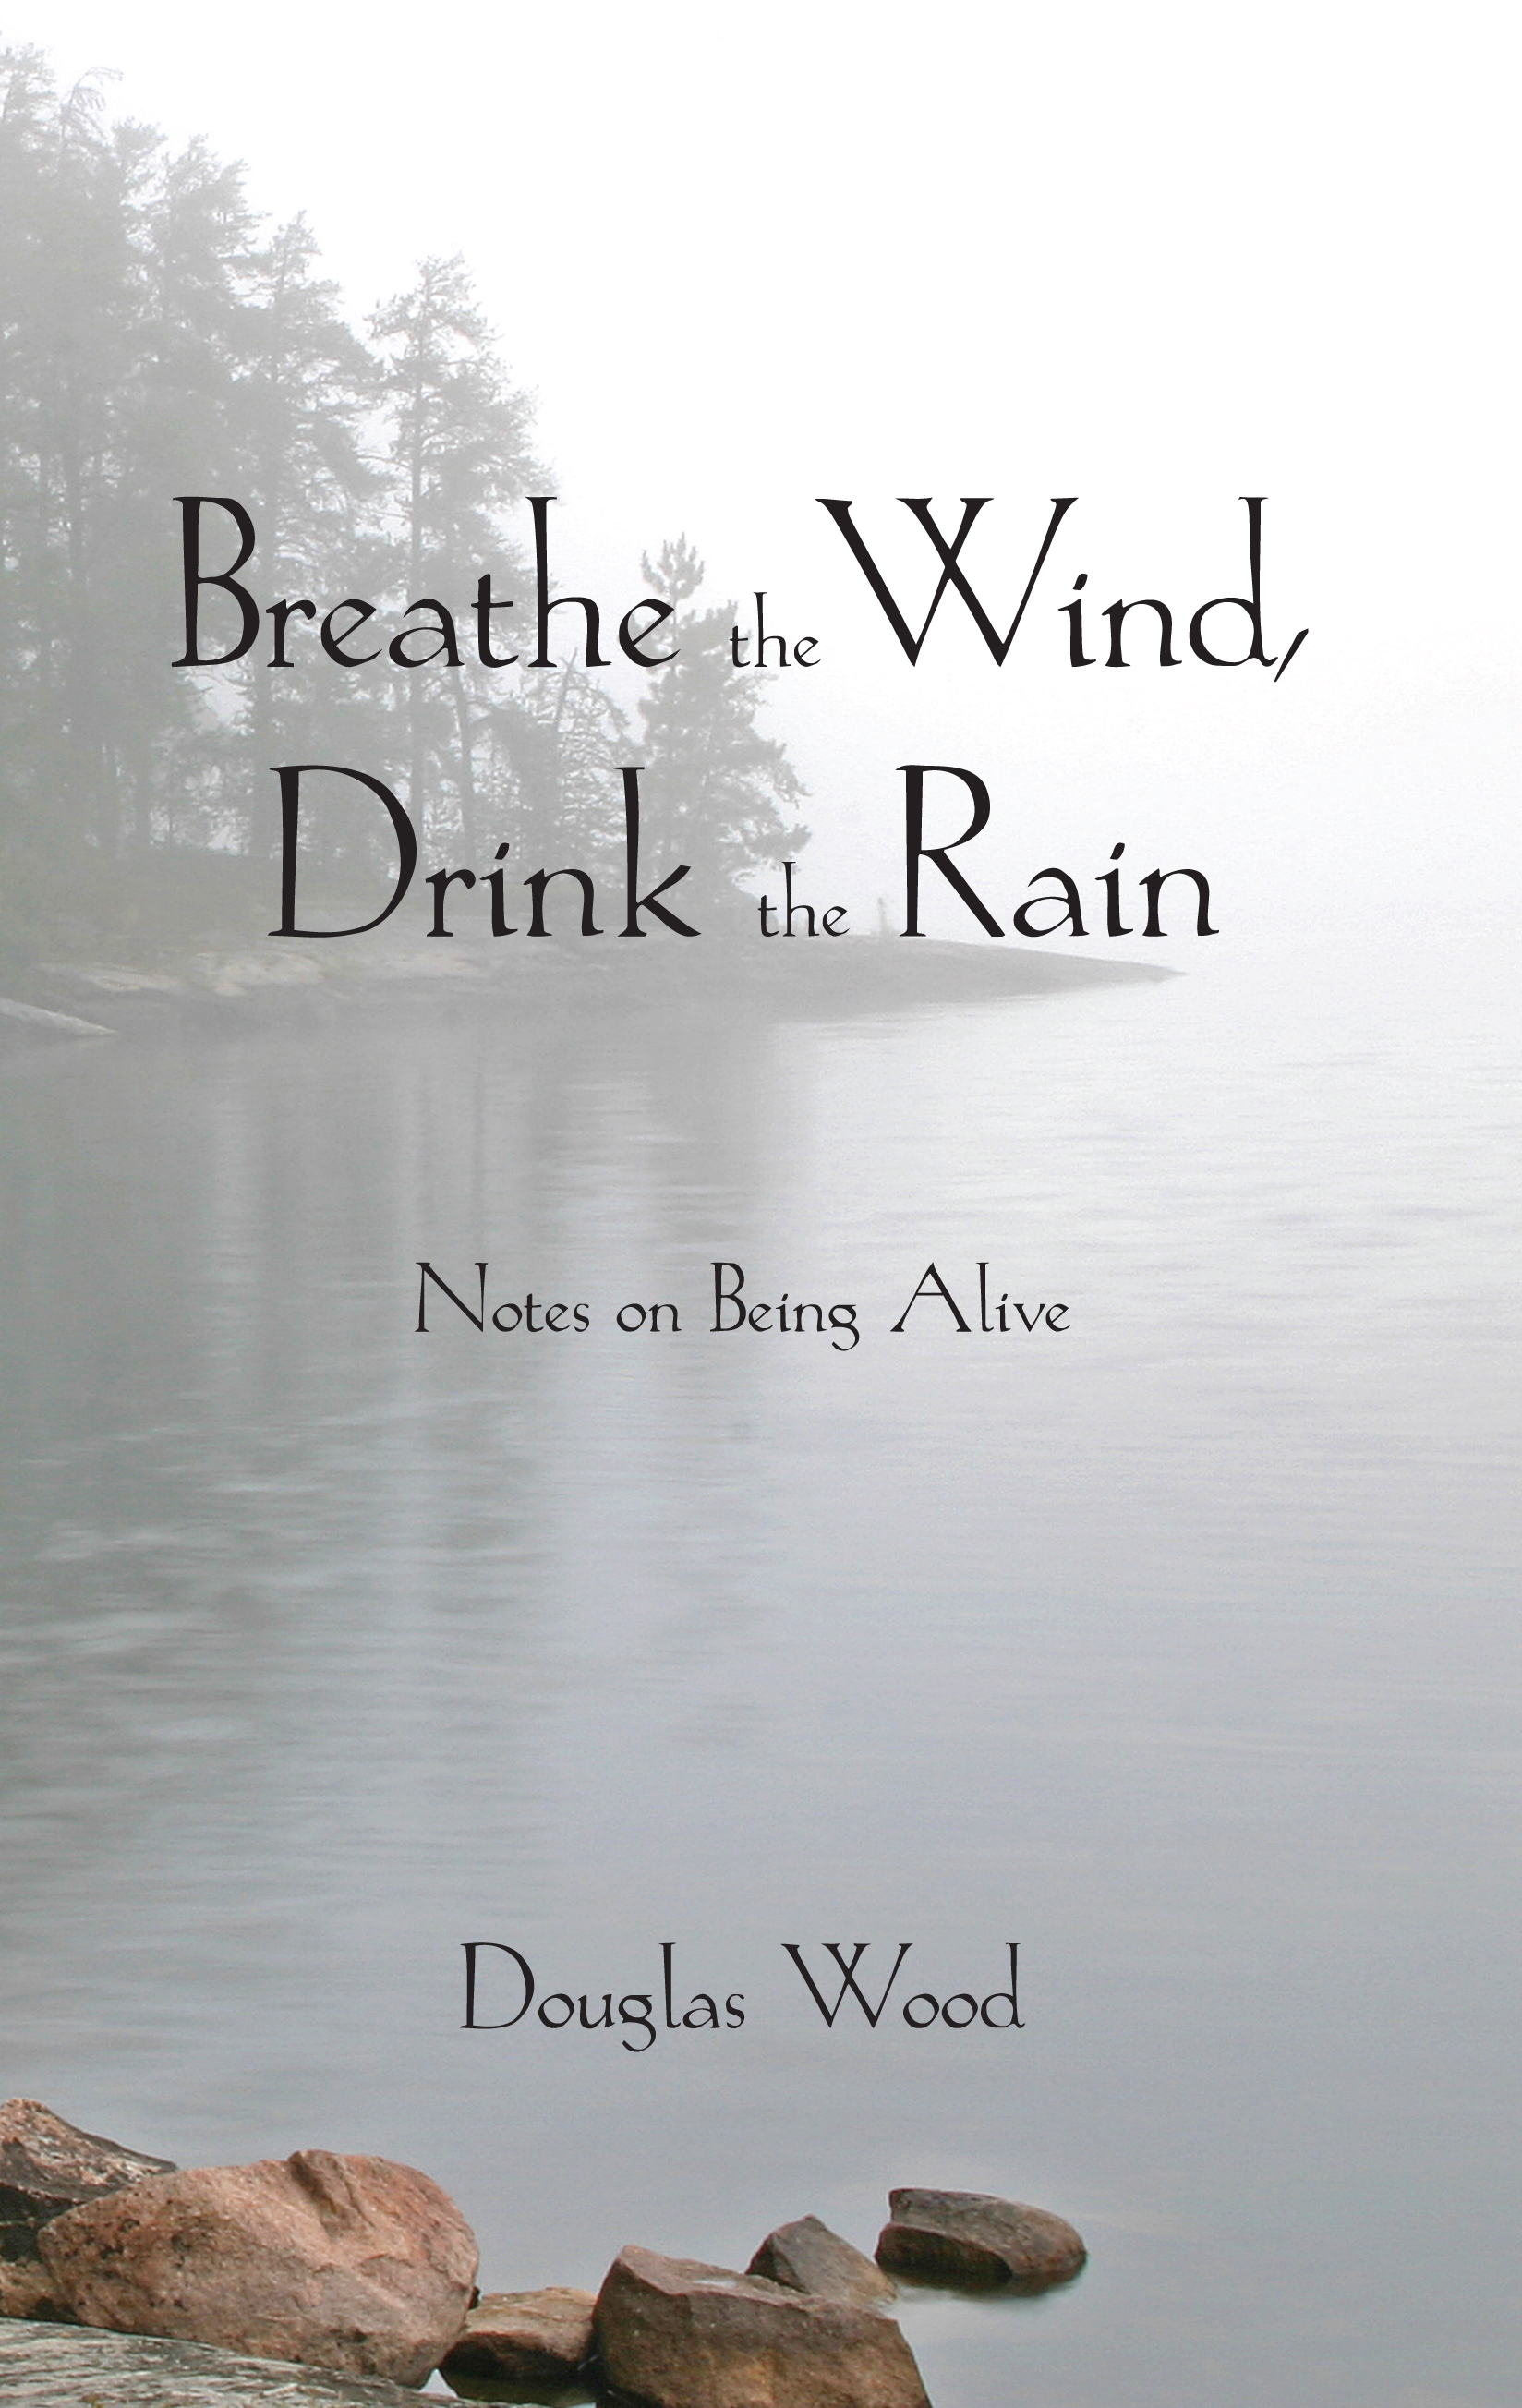 Breathe the Wind, Drink the Rain